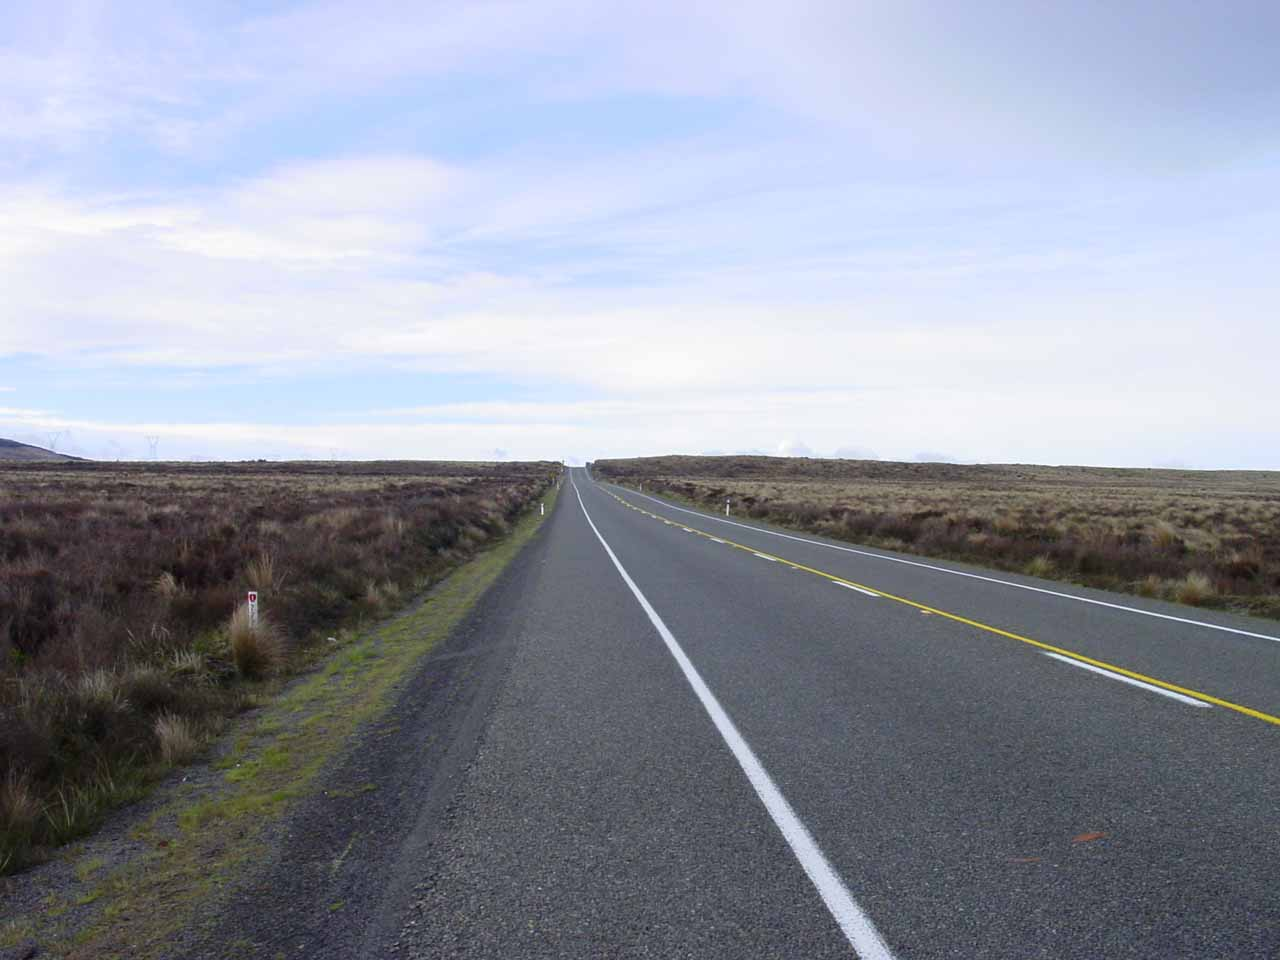 On our way to Ohakune from Turangi, we took the Desert Road, which seemed true to its name